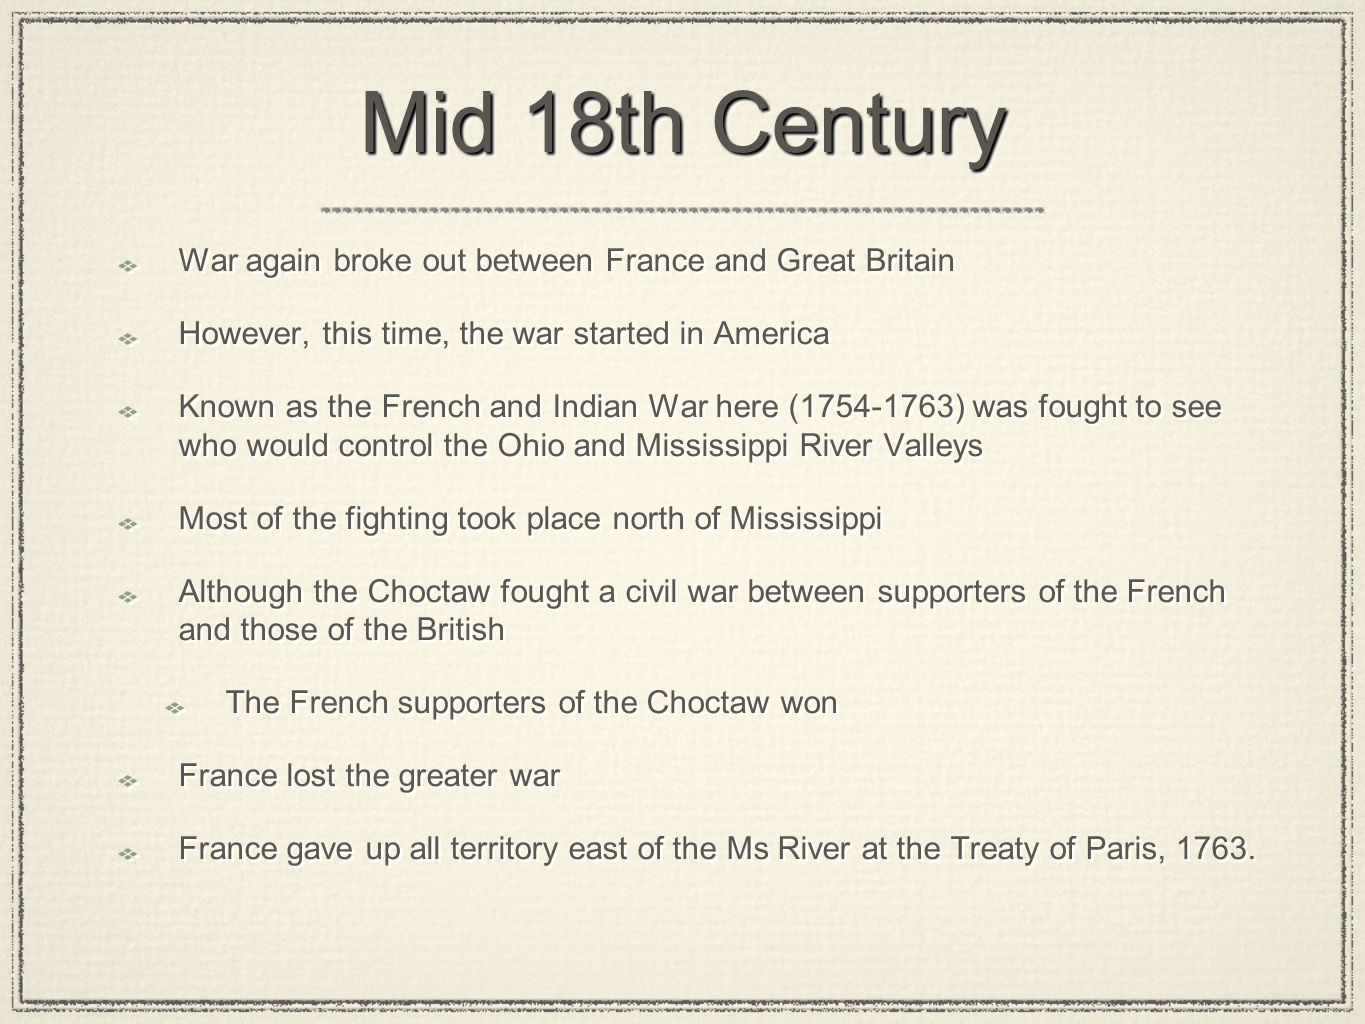 Mid 18th Century War again broke out between France and Great Britain